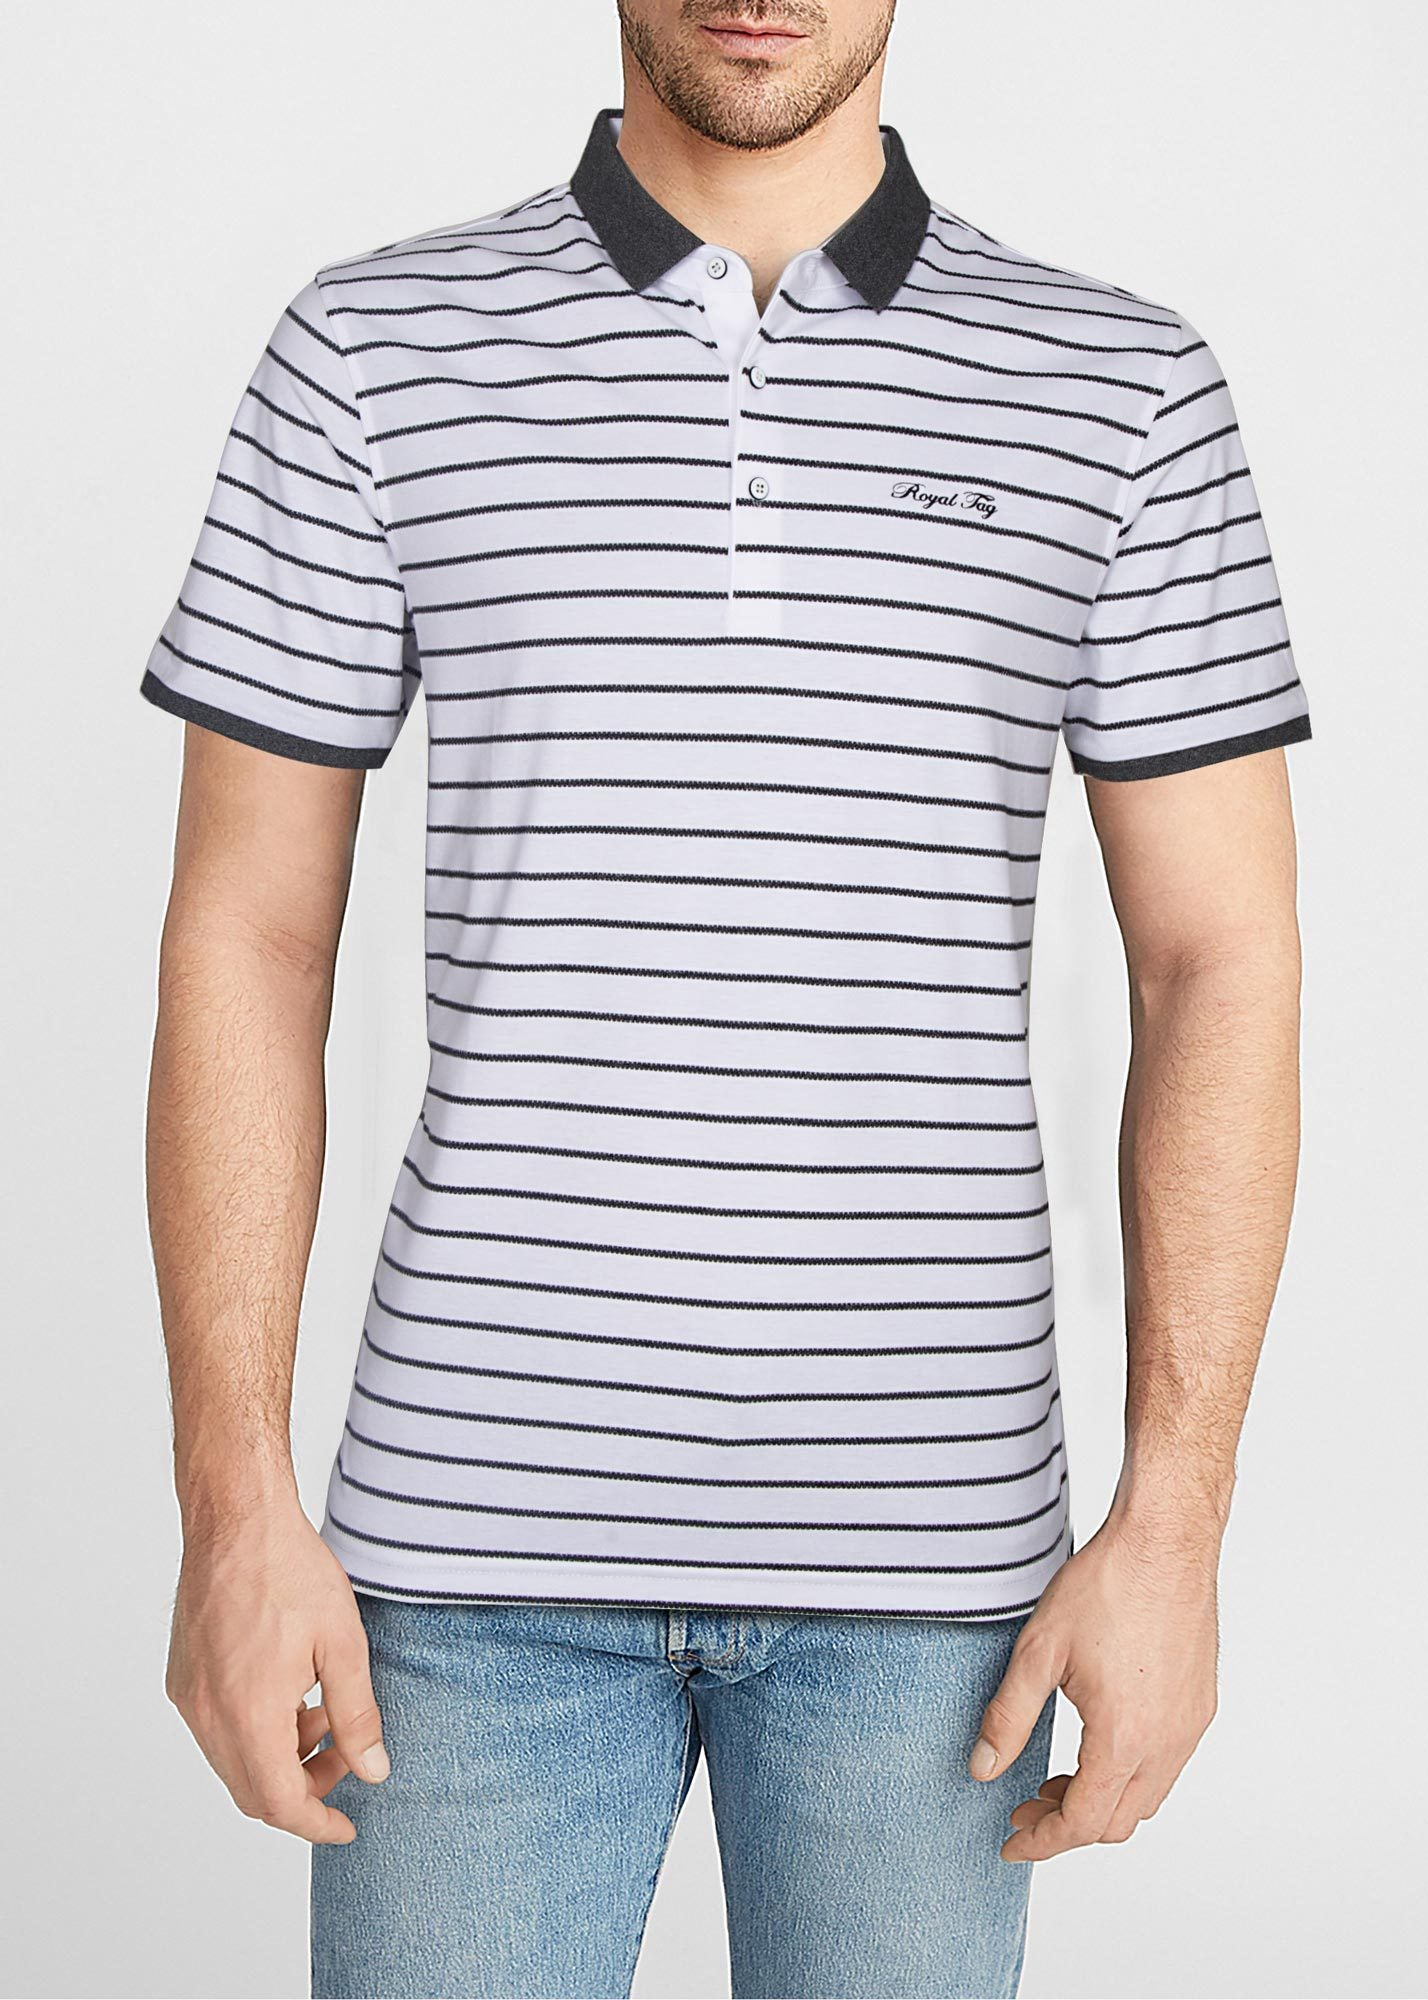 POLO SHIRT 8735-WT